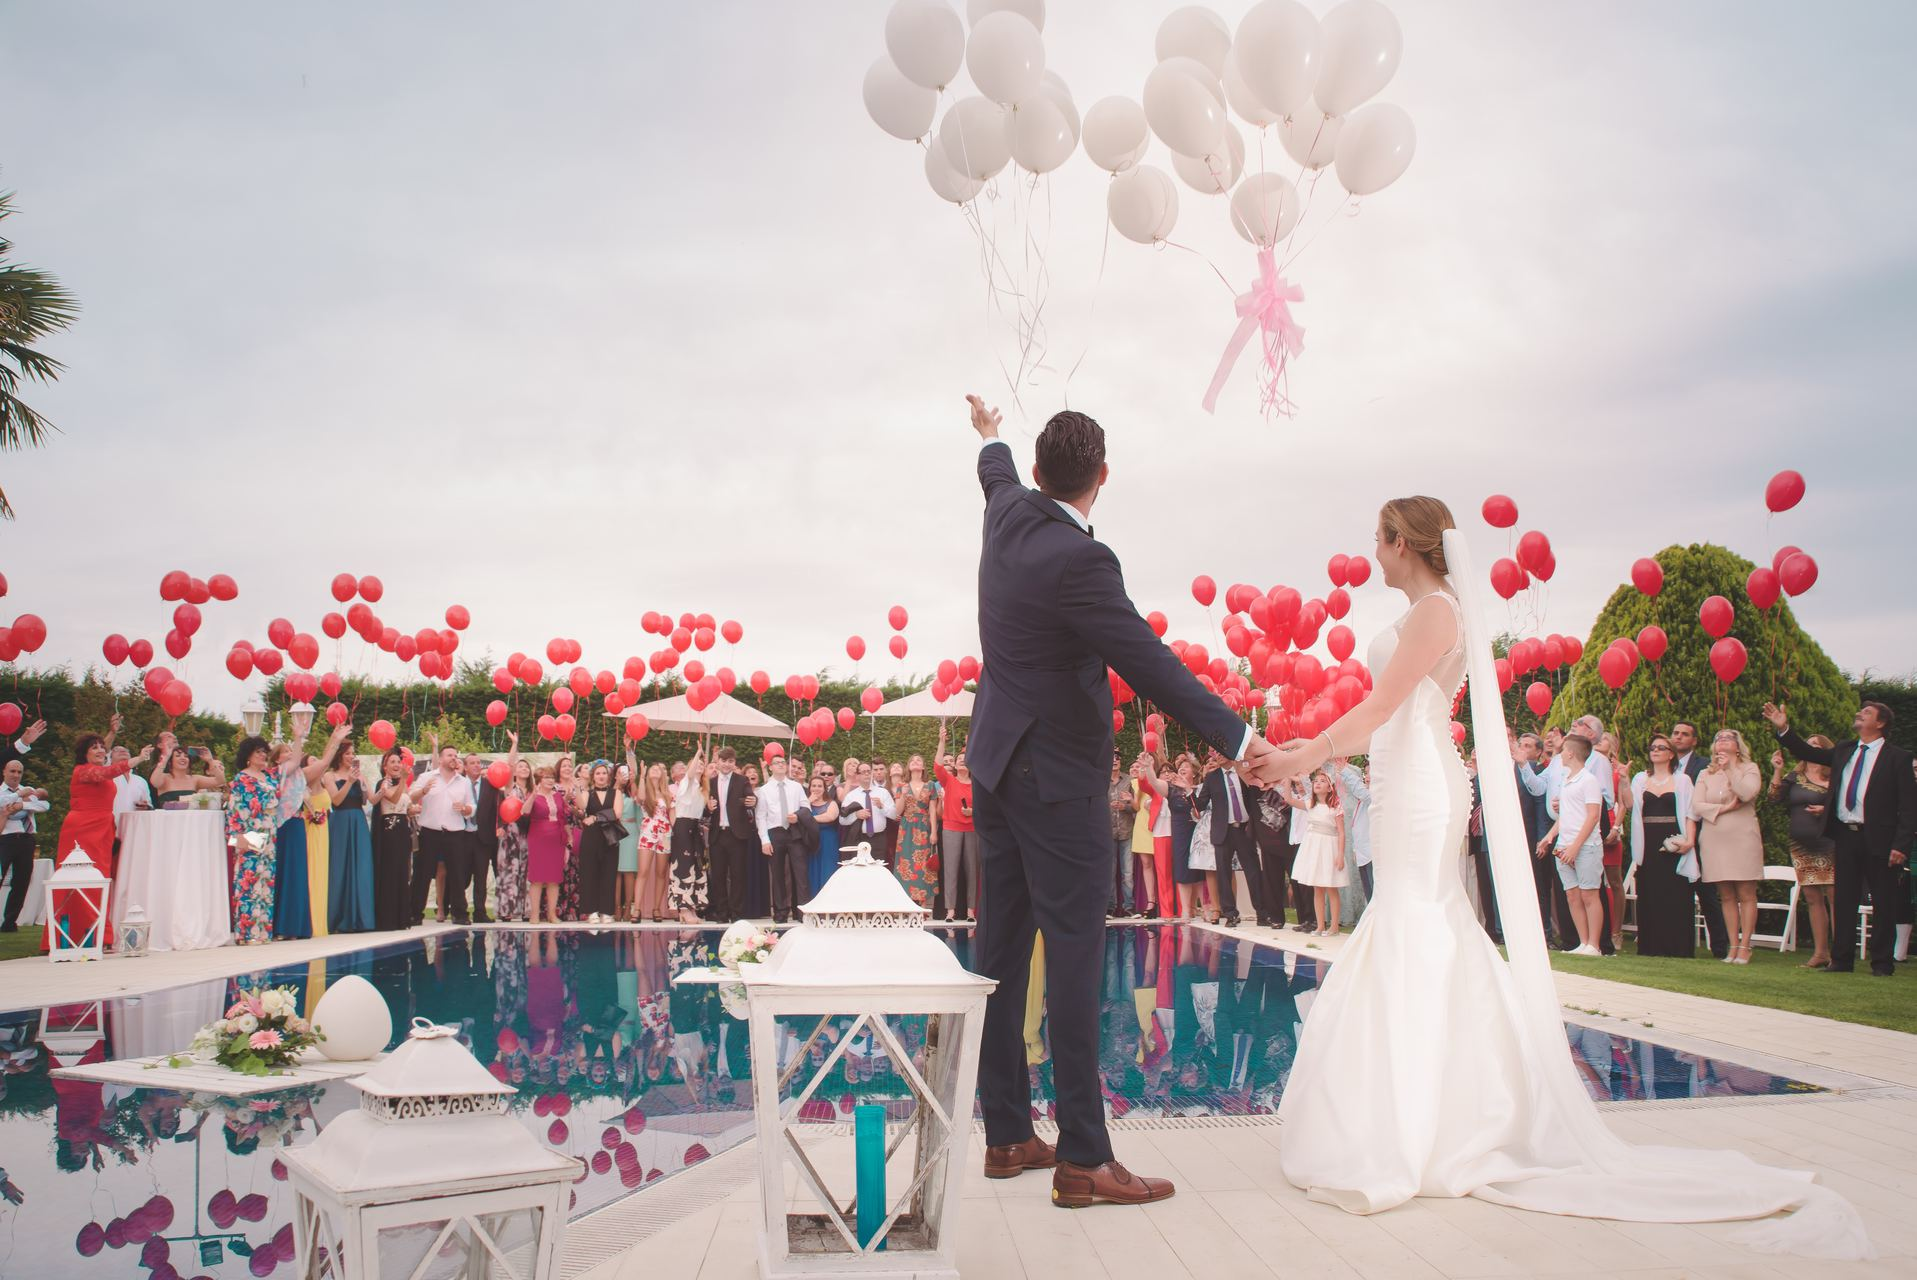 5 tips to prevent your wedding guest list from getting out